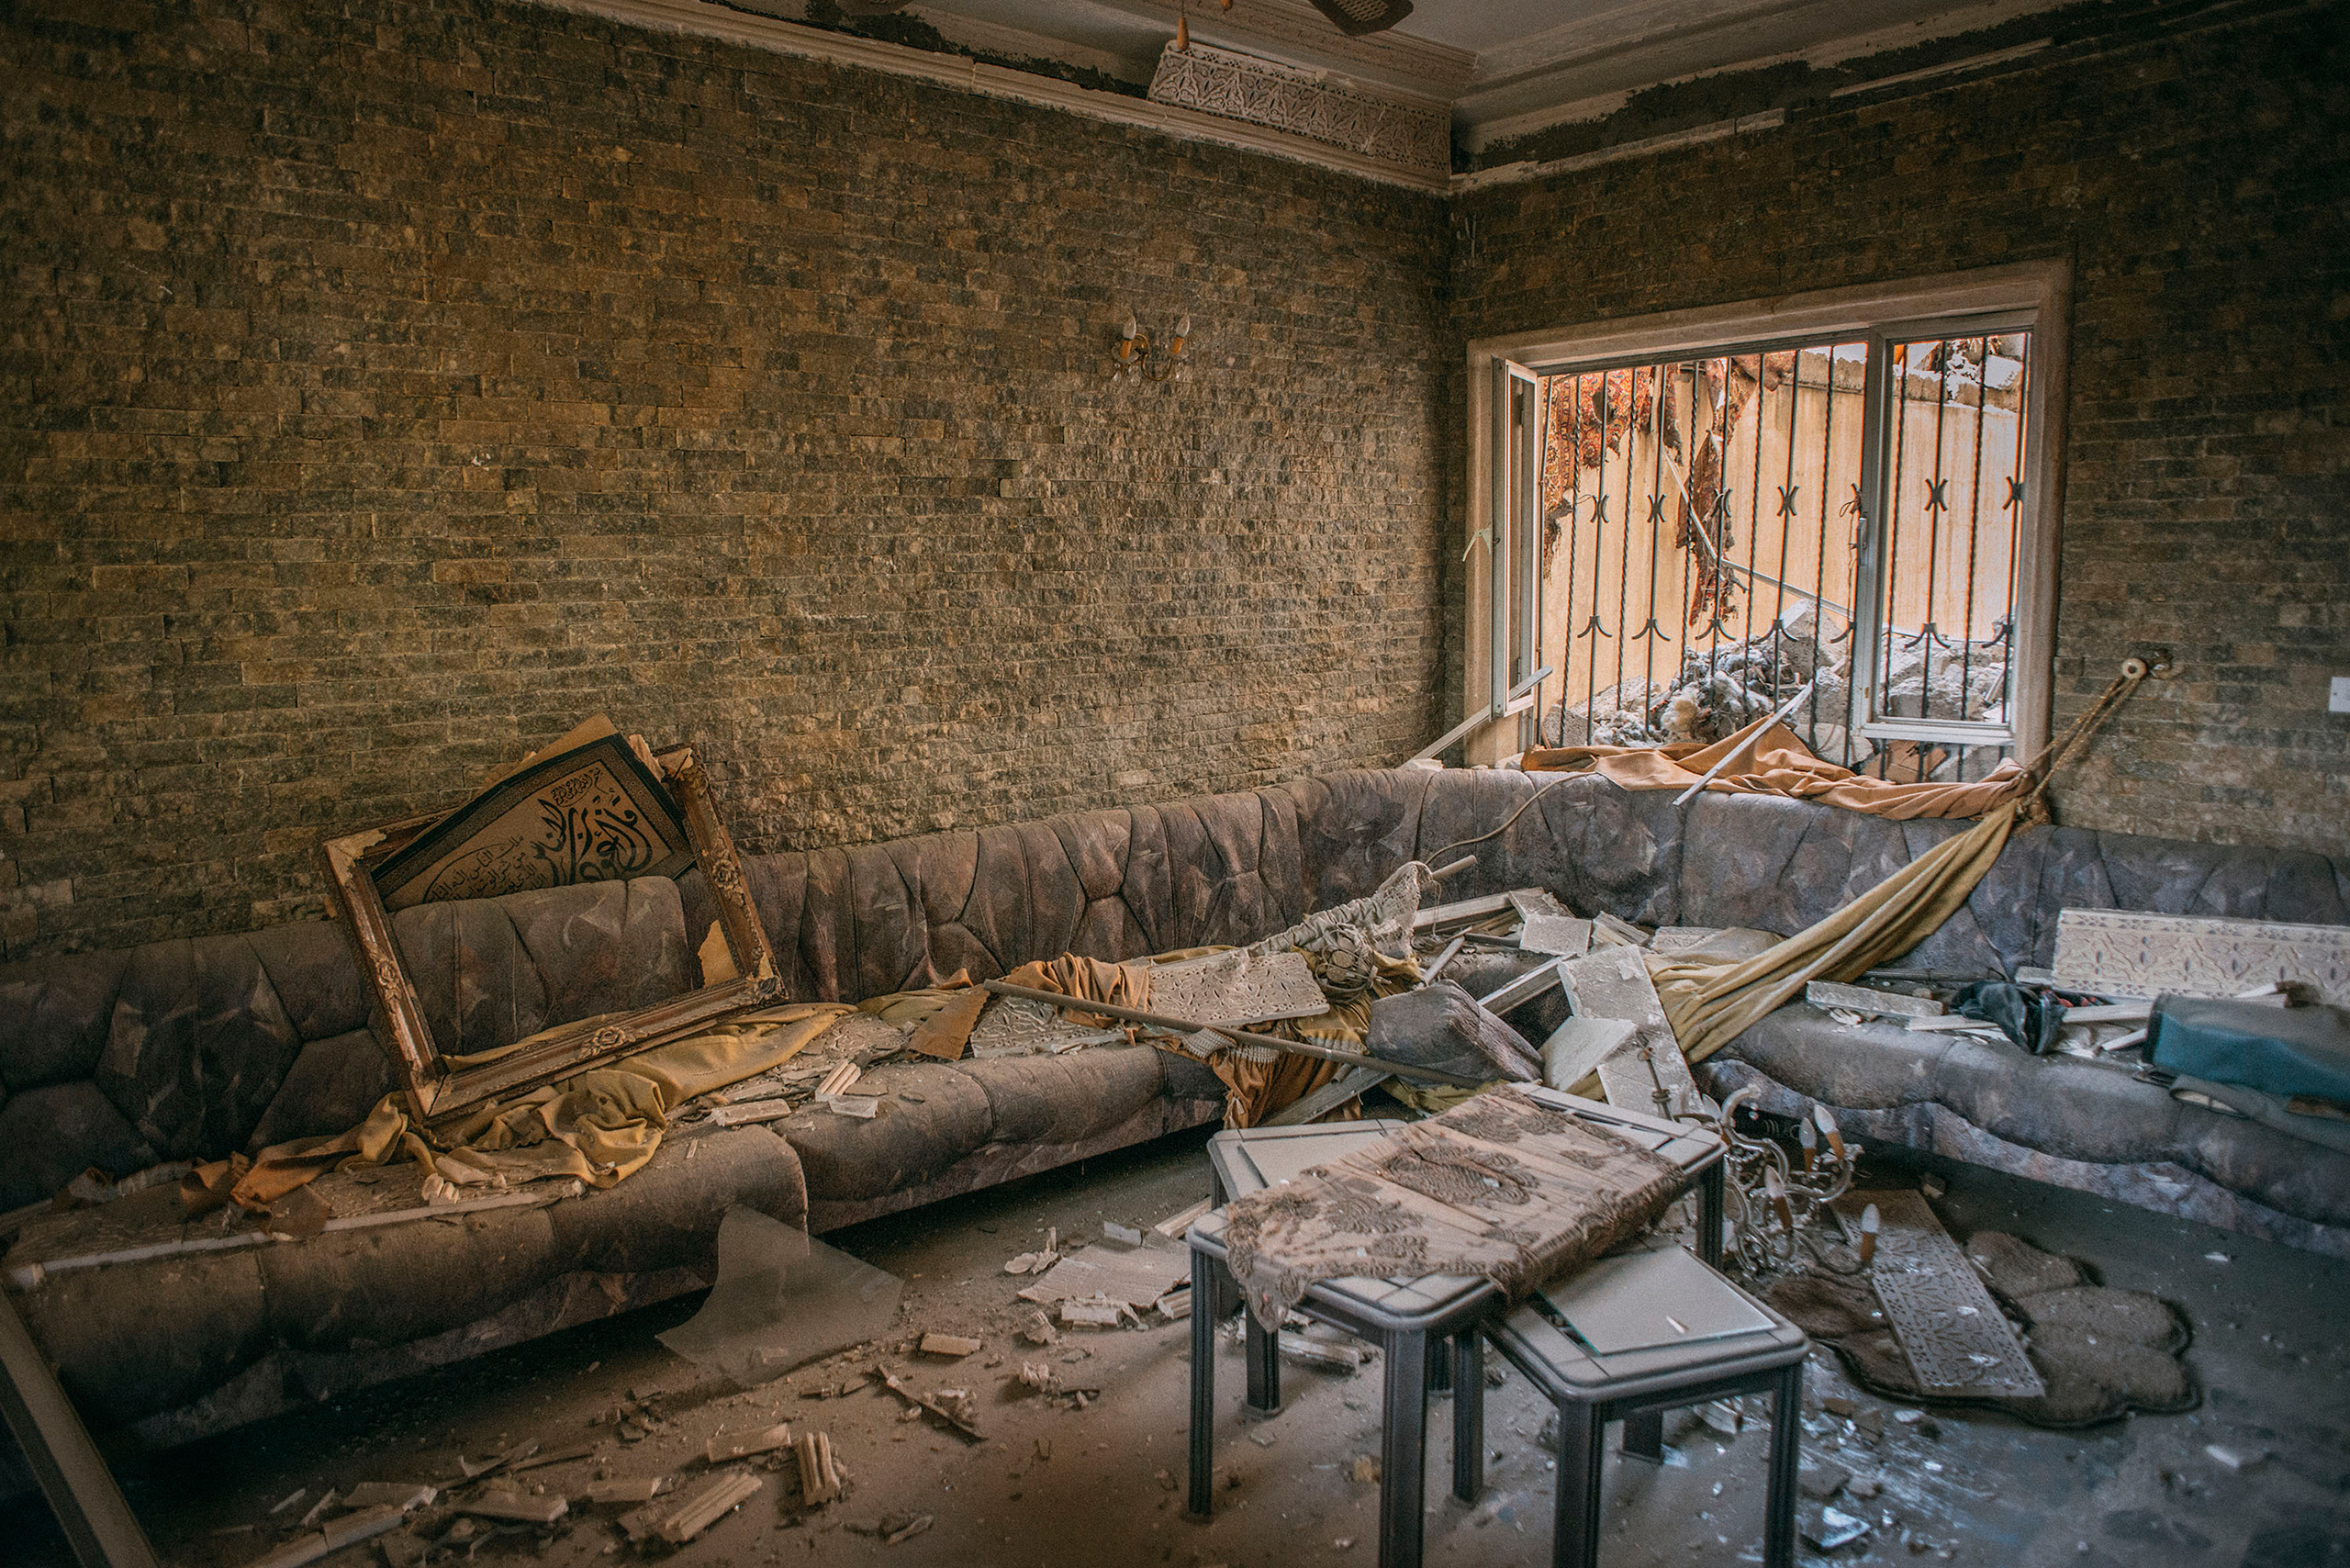 A room inside the home of Median Hikmat al-Galou that was ravaged during a February battle between Iraqi forces and ISIS in southwest Mosul.